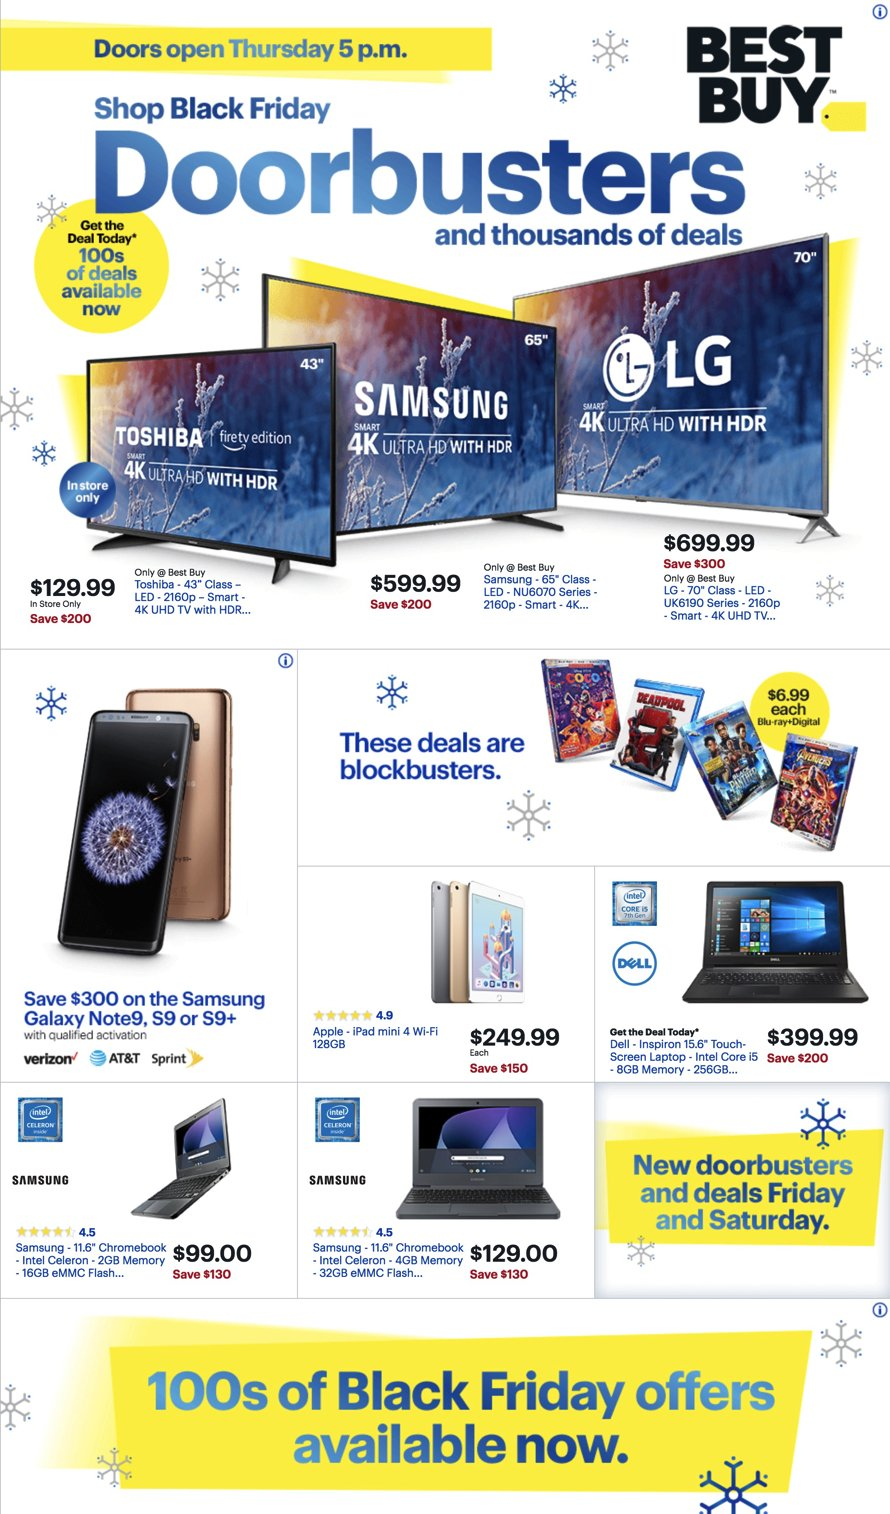 f2a1f9d0929 Best Buy Black Friday 2018 Page 1